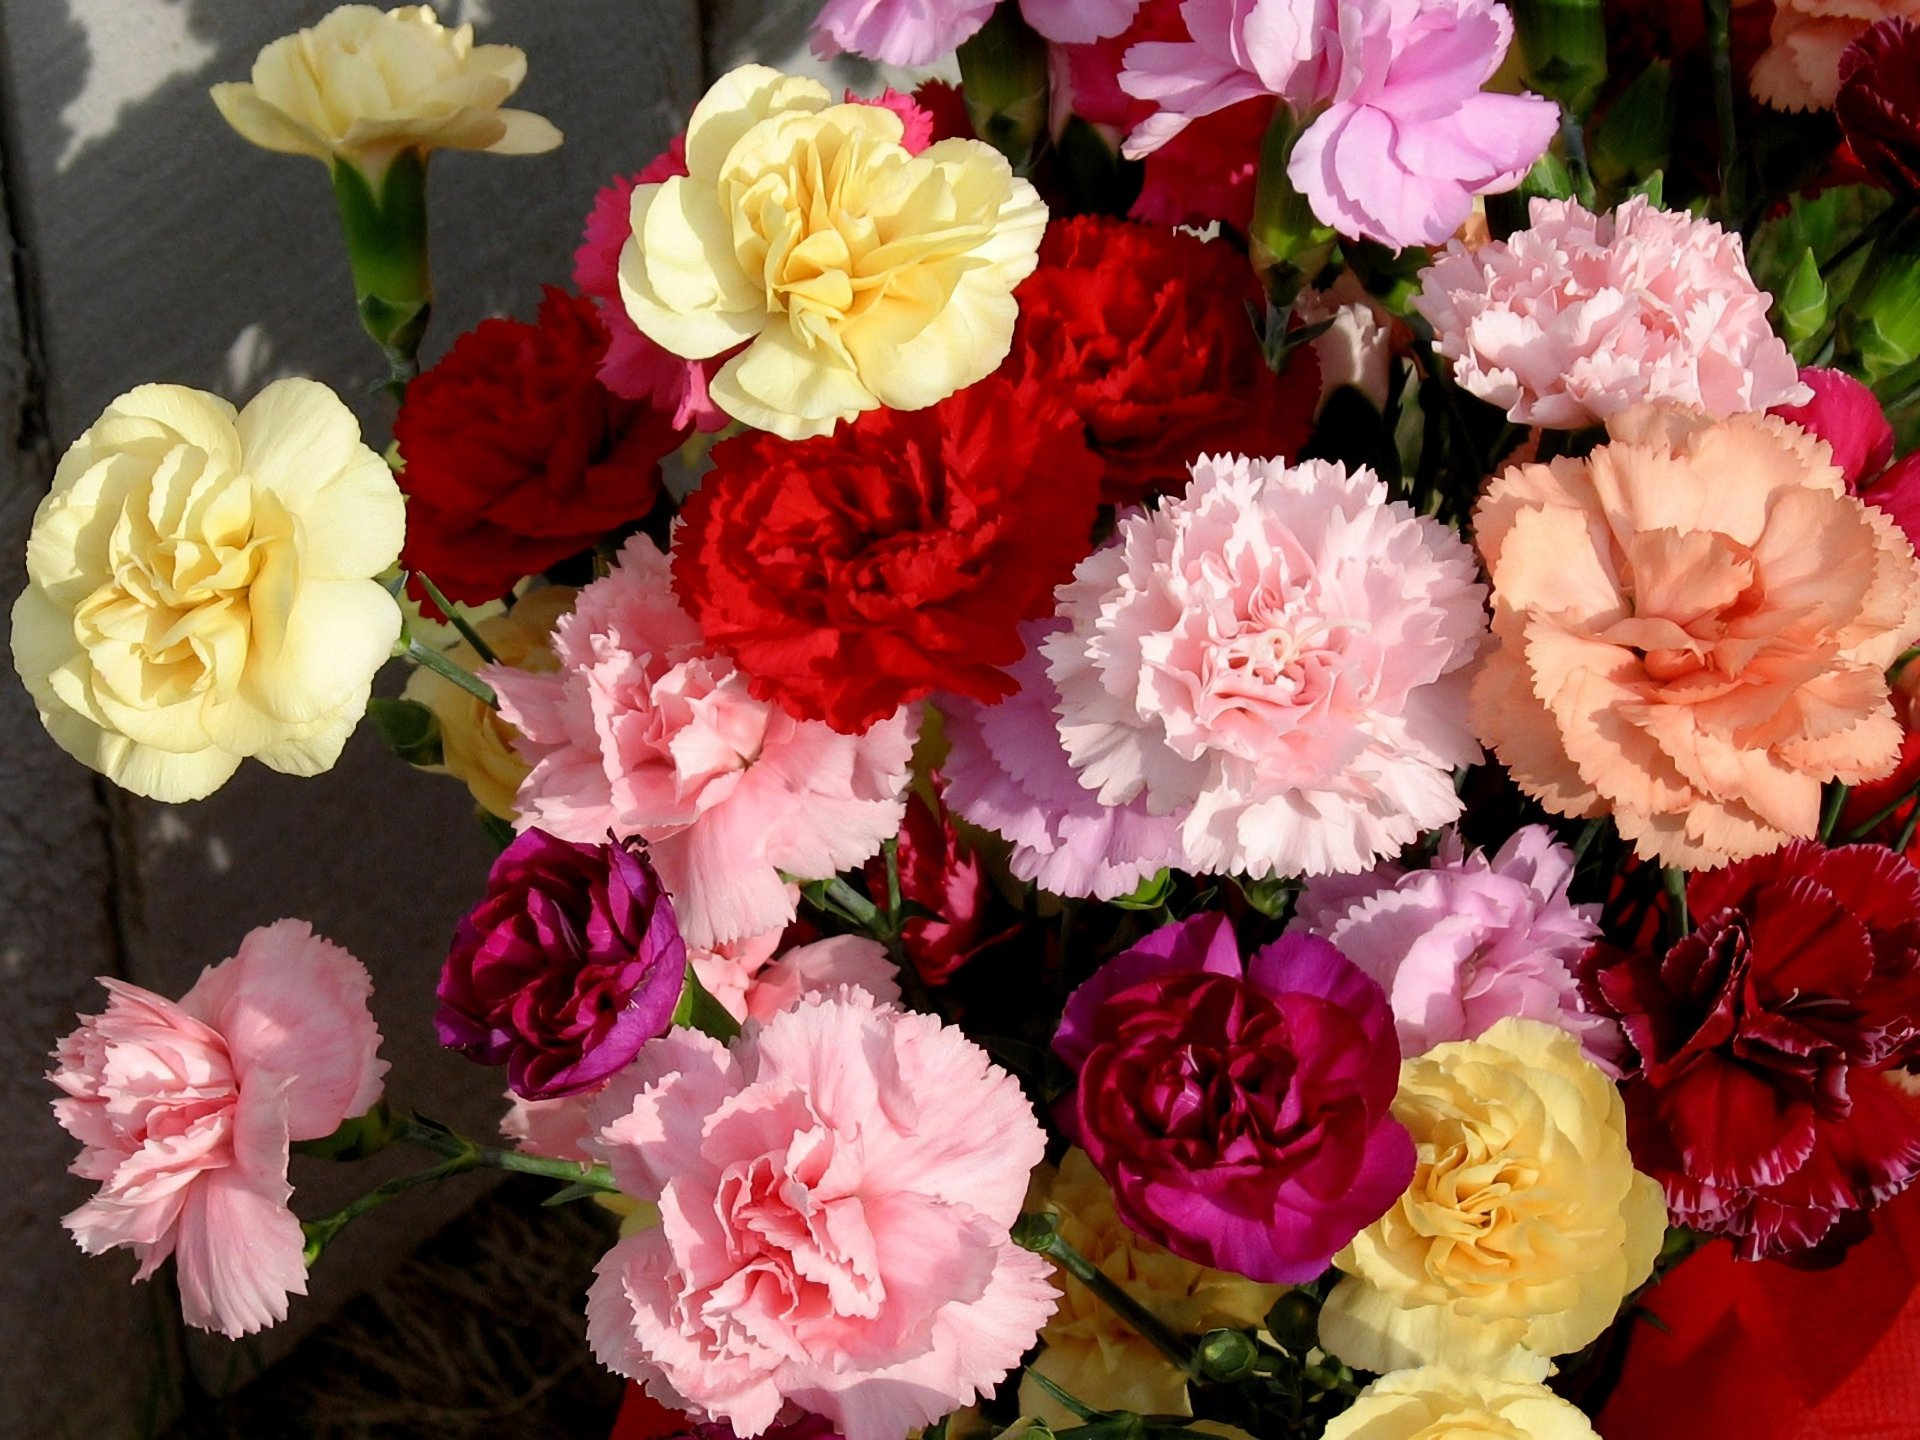 Colorful Carnations Full HD Wallpaper and Background Image ...